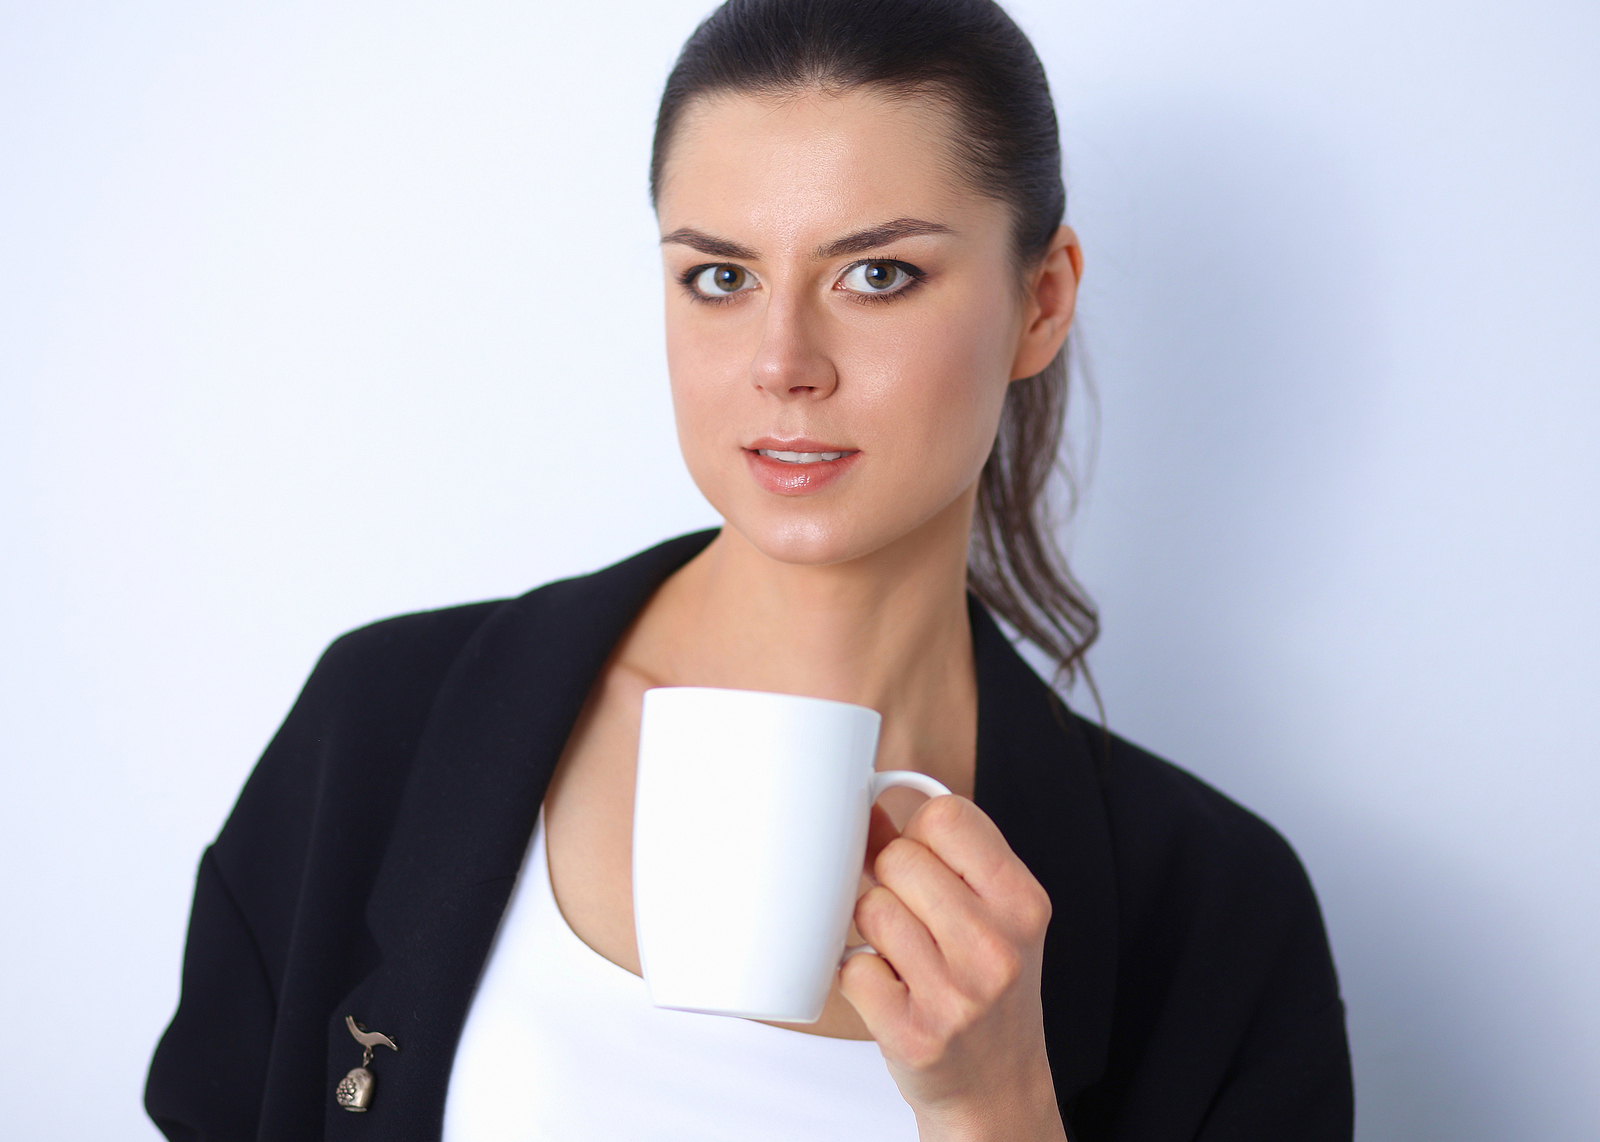 coffee drinker worries about stained teeth